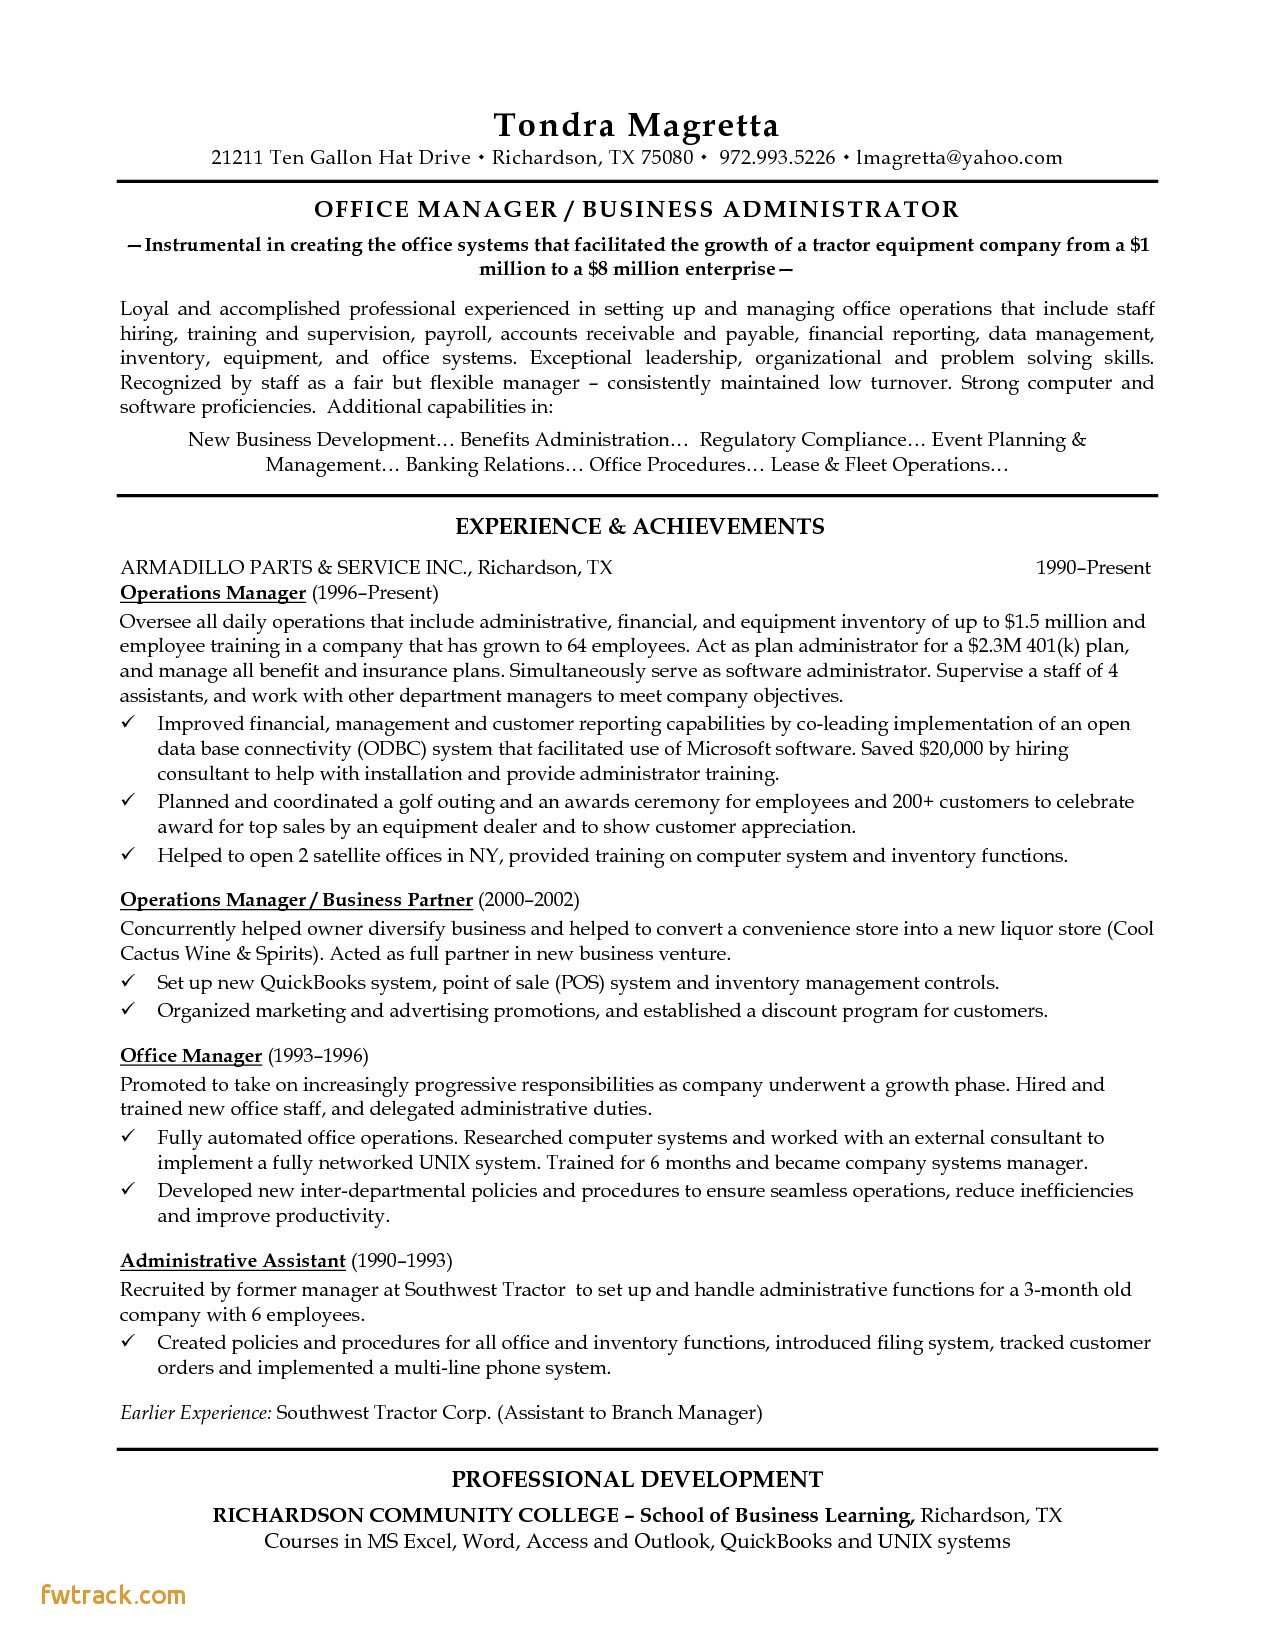 Retail Manager Resume Template - Resume Examples for Retail Fwtrack Fwtrack